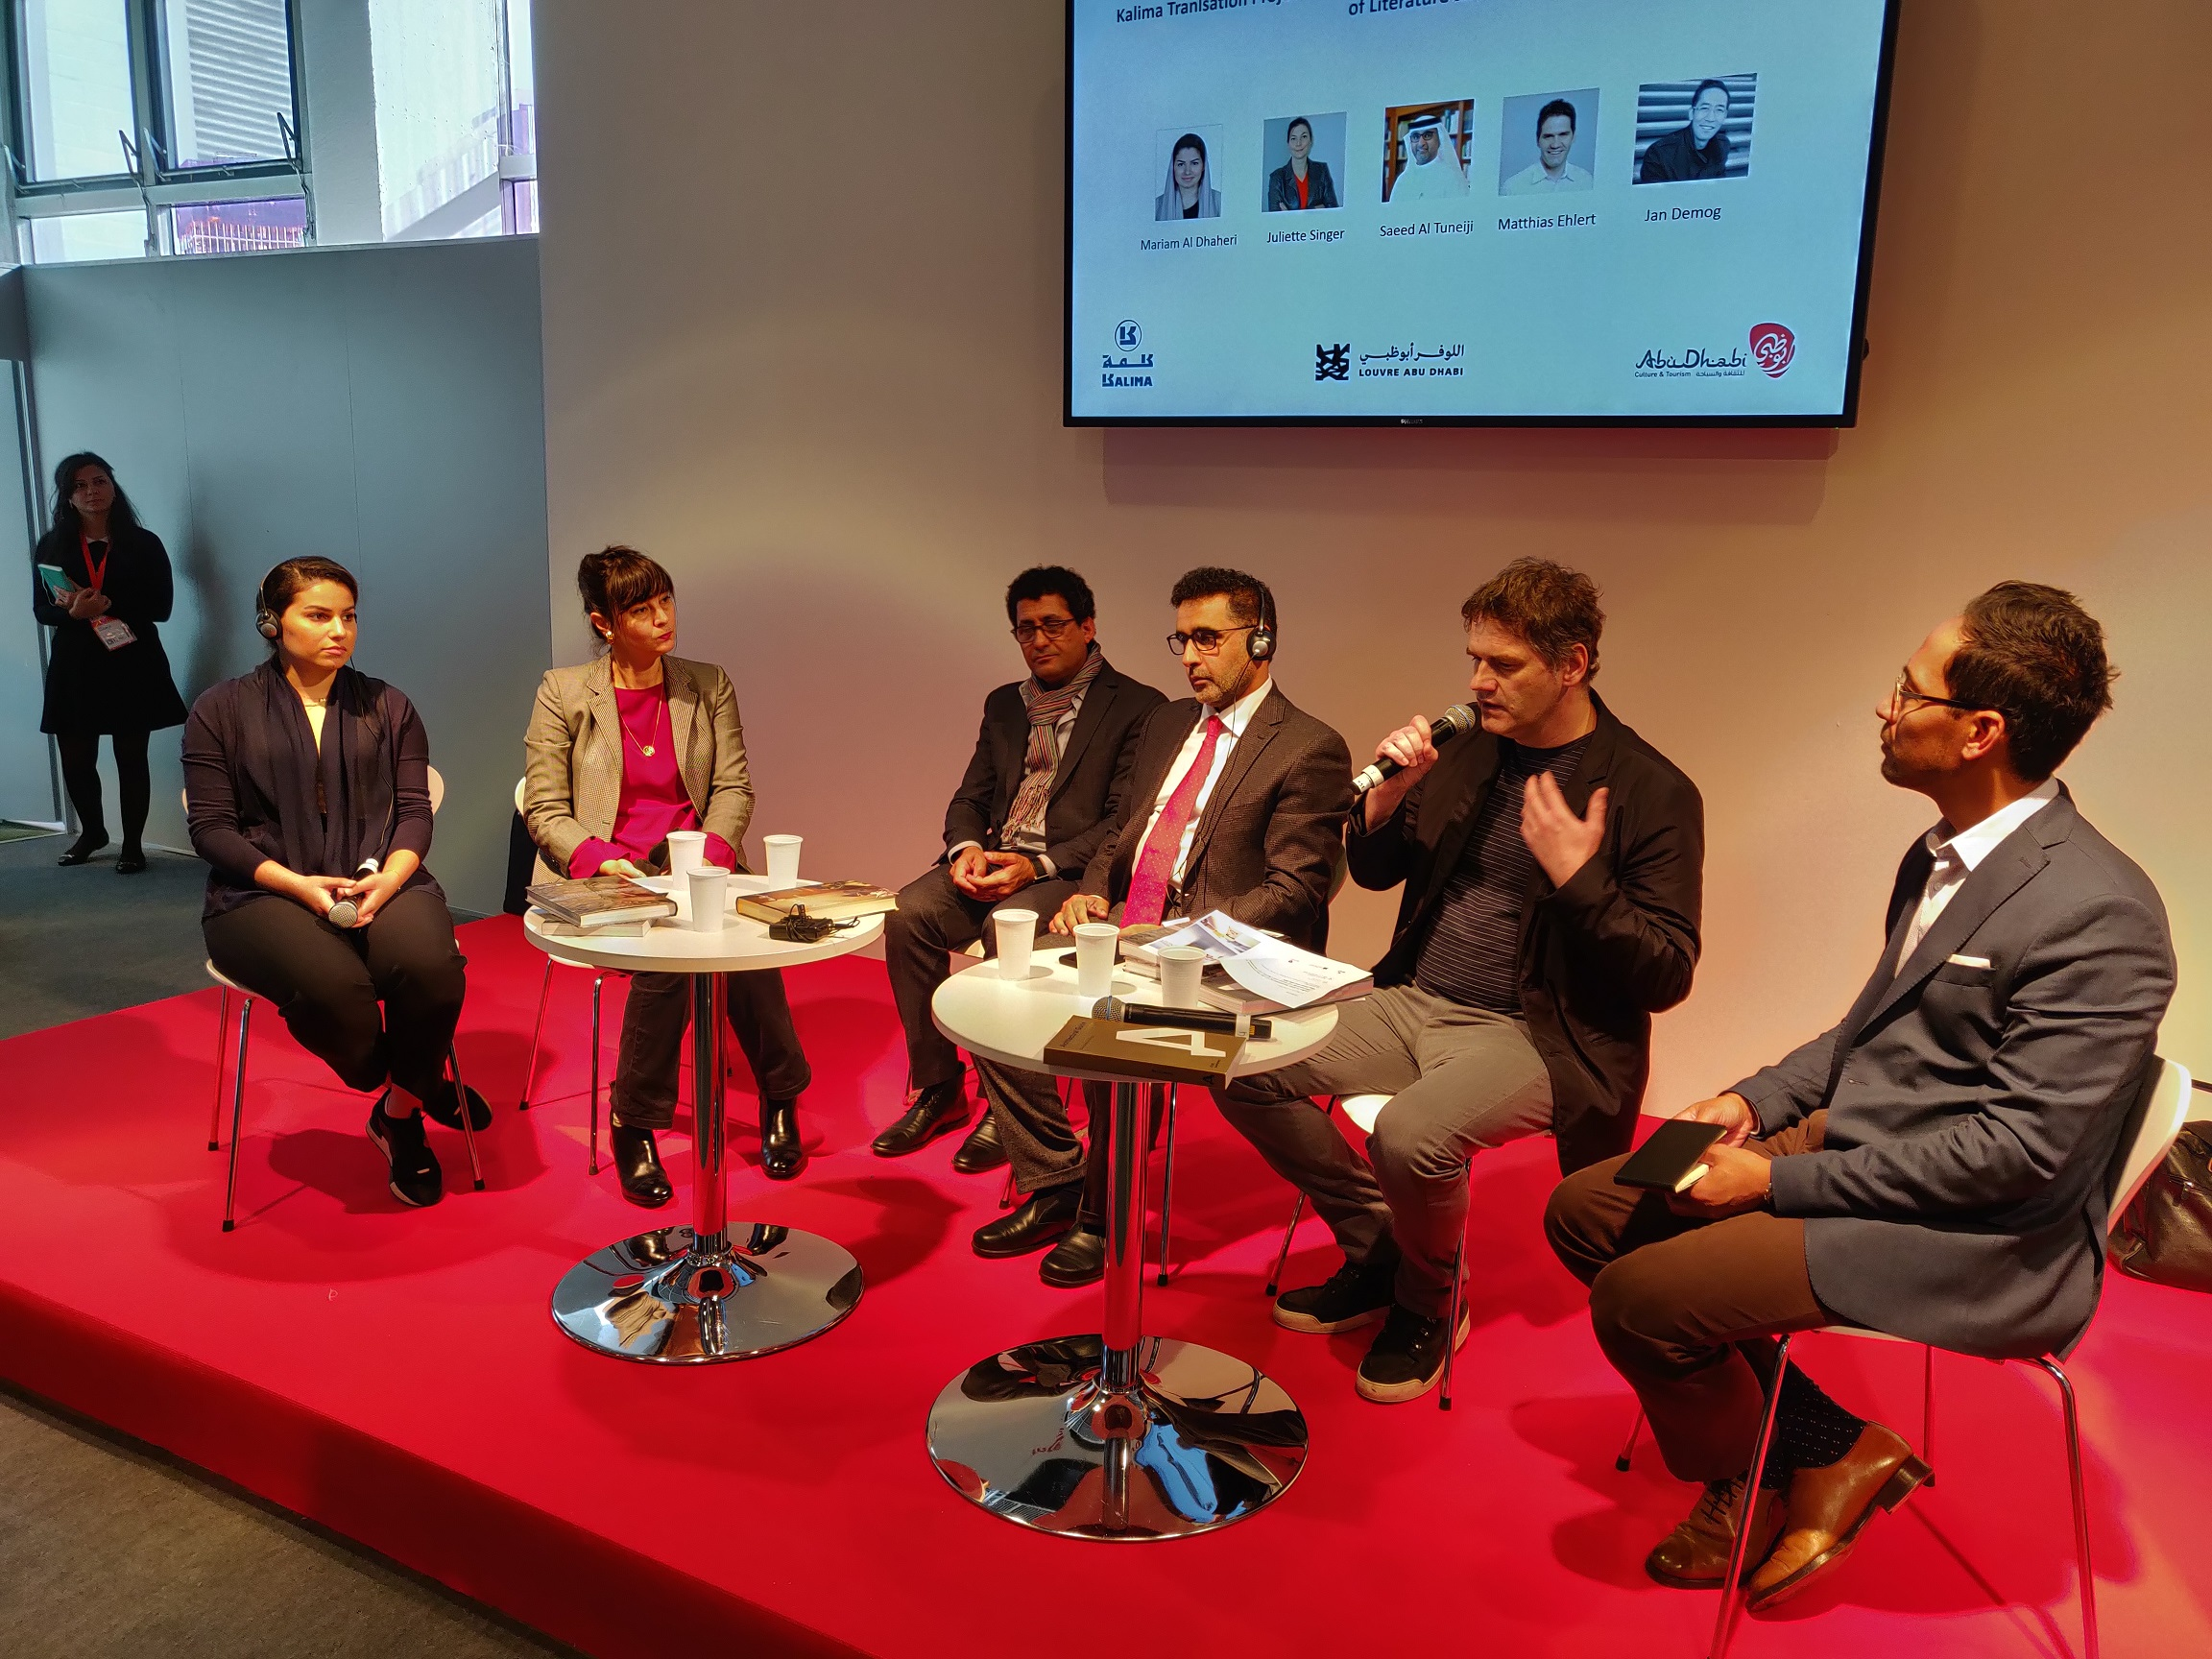 louvre abu dhabi hosts panel discussion at world's largest book fair in germany 2